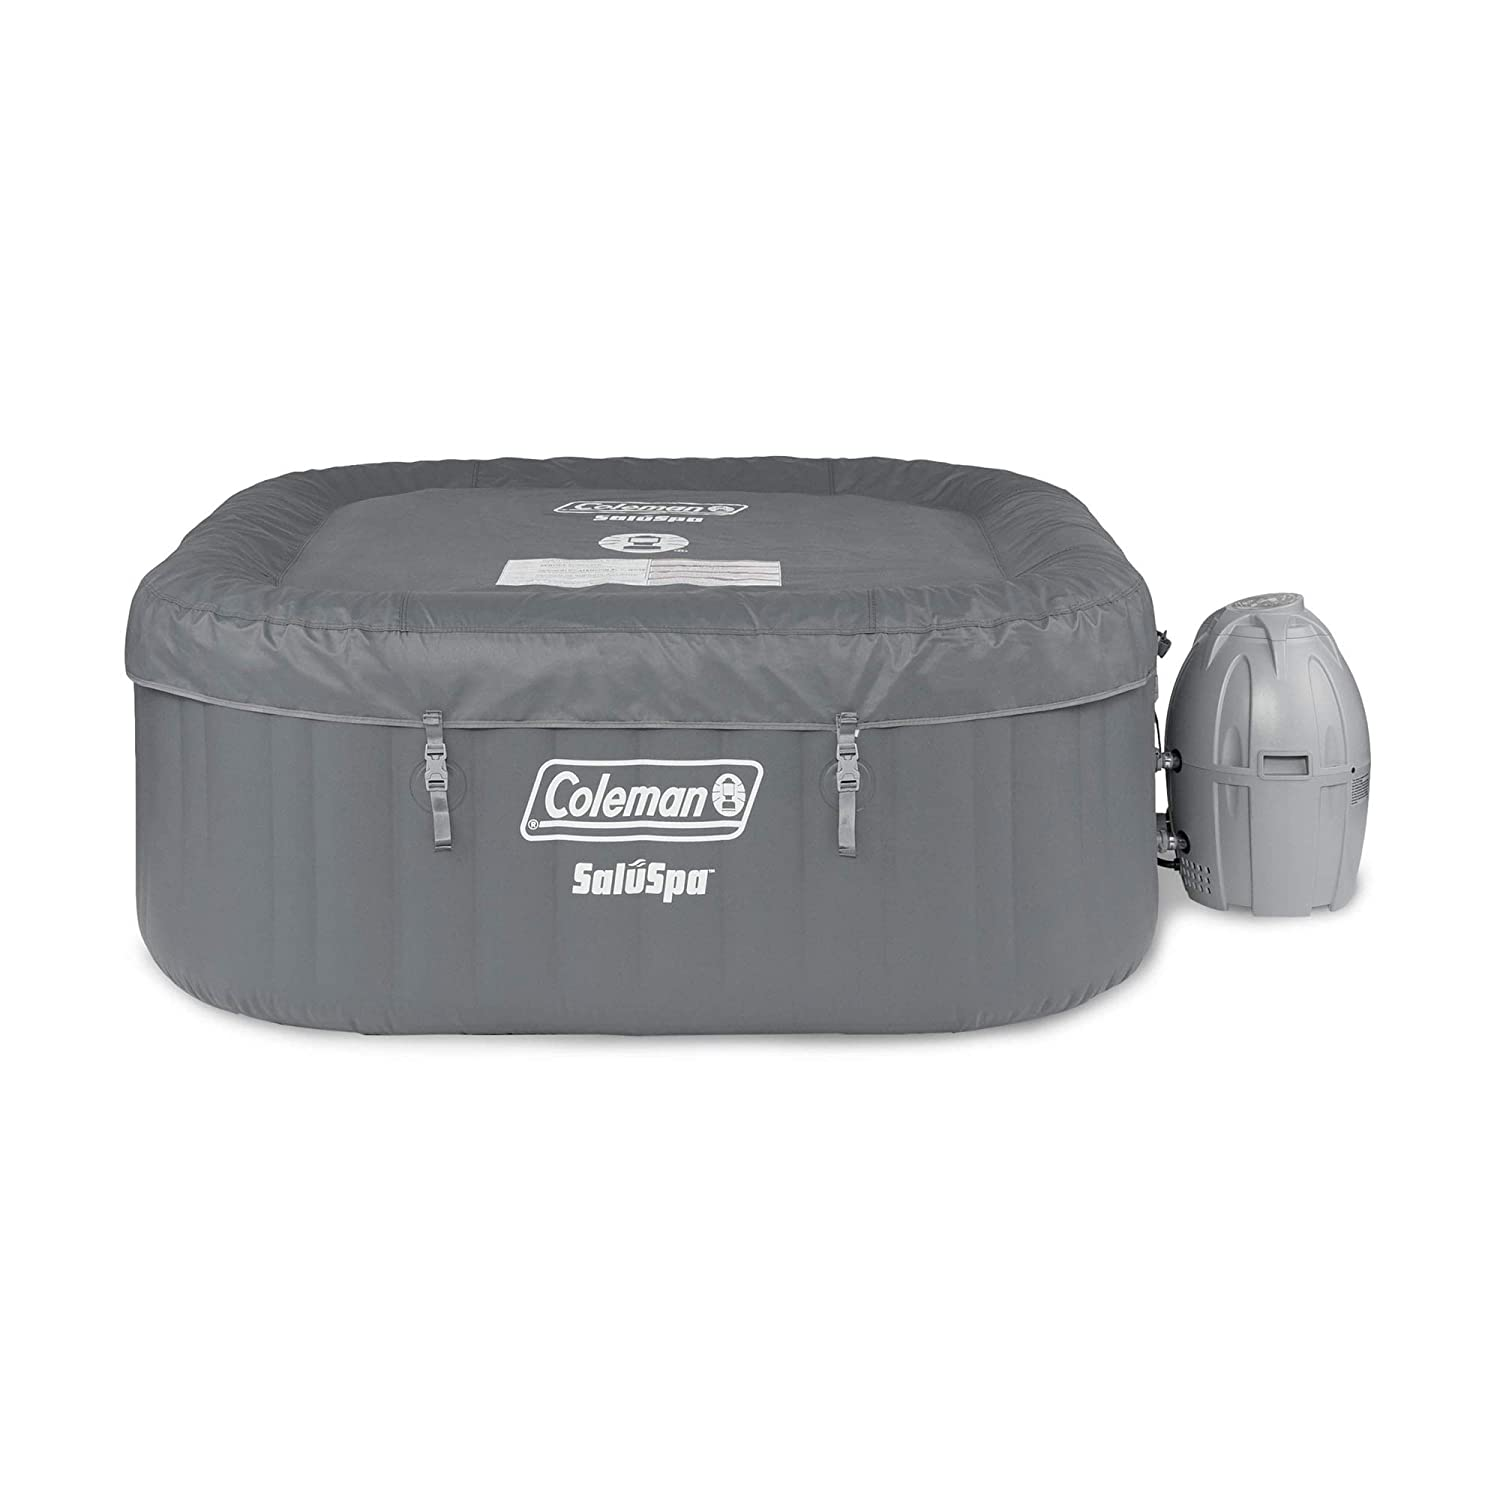 Coleman SaluSpa Bubble Airjet Technology with Pump and Cover